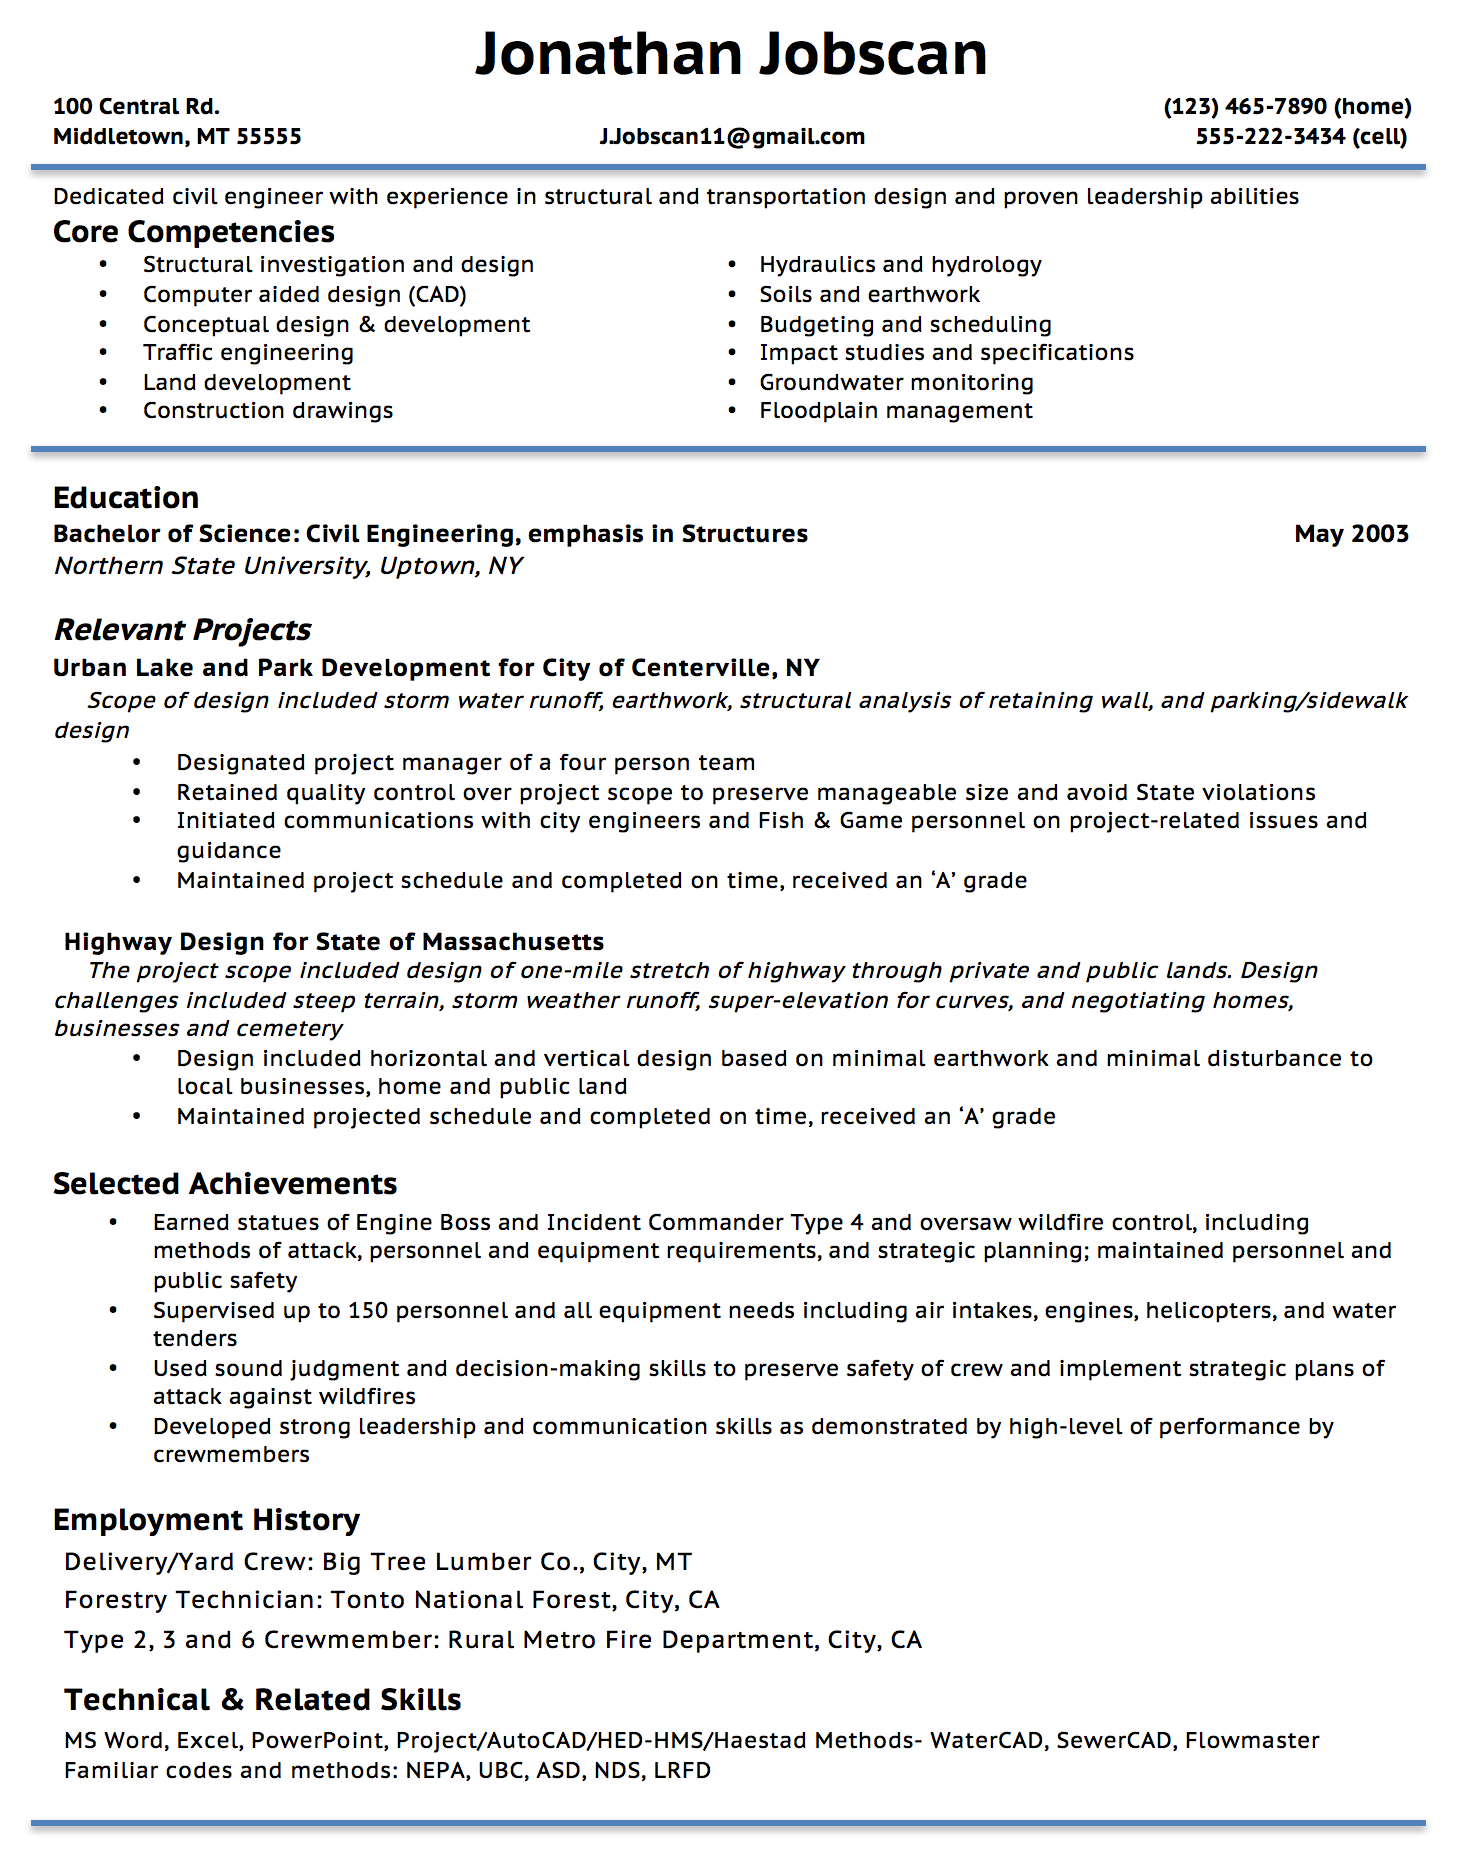 Opposenewapstandardsus  Stunning Resume Writing Guide  Jobscan With Fair Example Of A Functional Resume Format With Delectable Executive Assistant Resume Objective Also Registered Dietitian Resume In Addition Sales Associate Description For Resume And Front Desk Hotel Resume As Well As Resume Outline Template Additionally Writing A Resume With No Work Experience From Jobscanco With Opposenewapstandardsus  Fair Resume Writing Guide  Jobscan With Delectable Example Of A Functional Resume Format And Stunning Executive Assistant Resume Objective Also Registered Dietitian Resume In Addition Sales Associate Description For Resume From Jobscanco